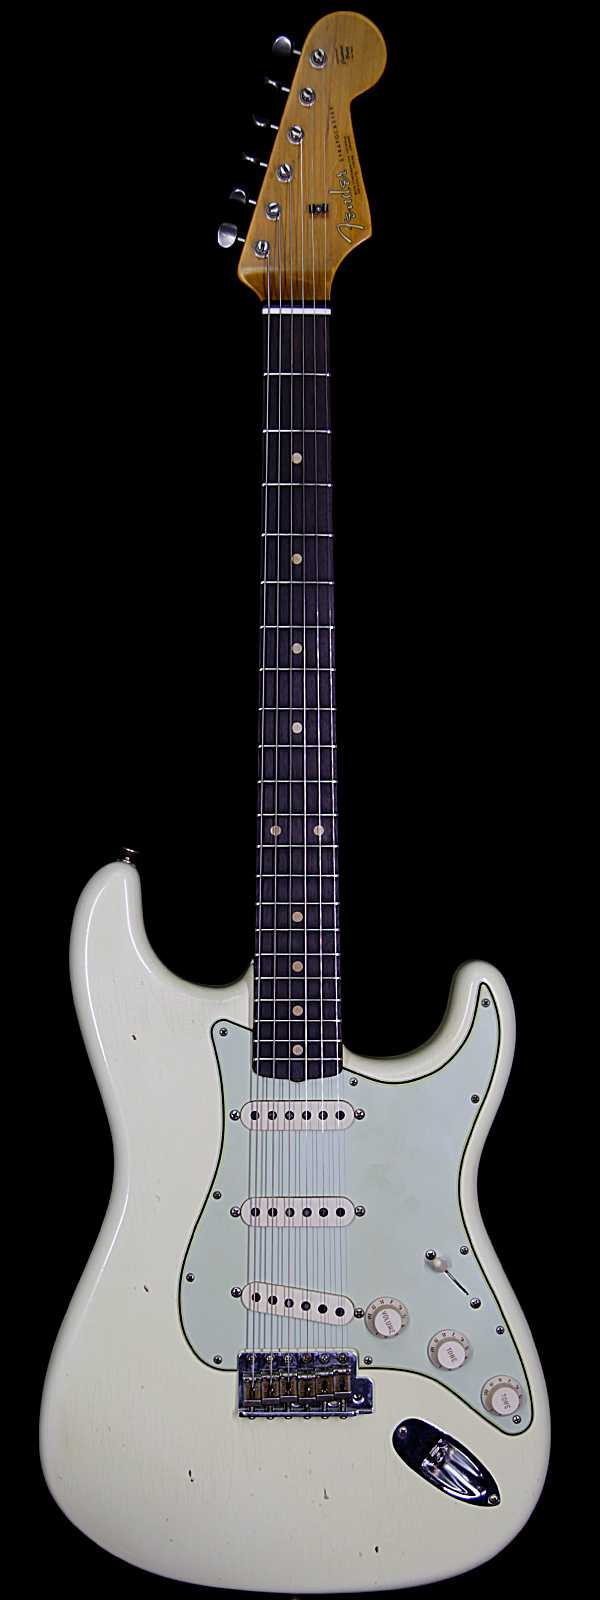 Fender Custom Shop 1963 Stratocaster Journeyman Relic with Dirty Neck Rosewood Board Vintage White